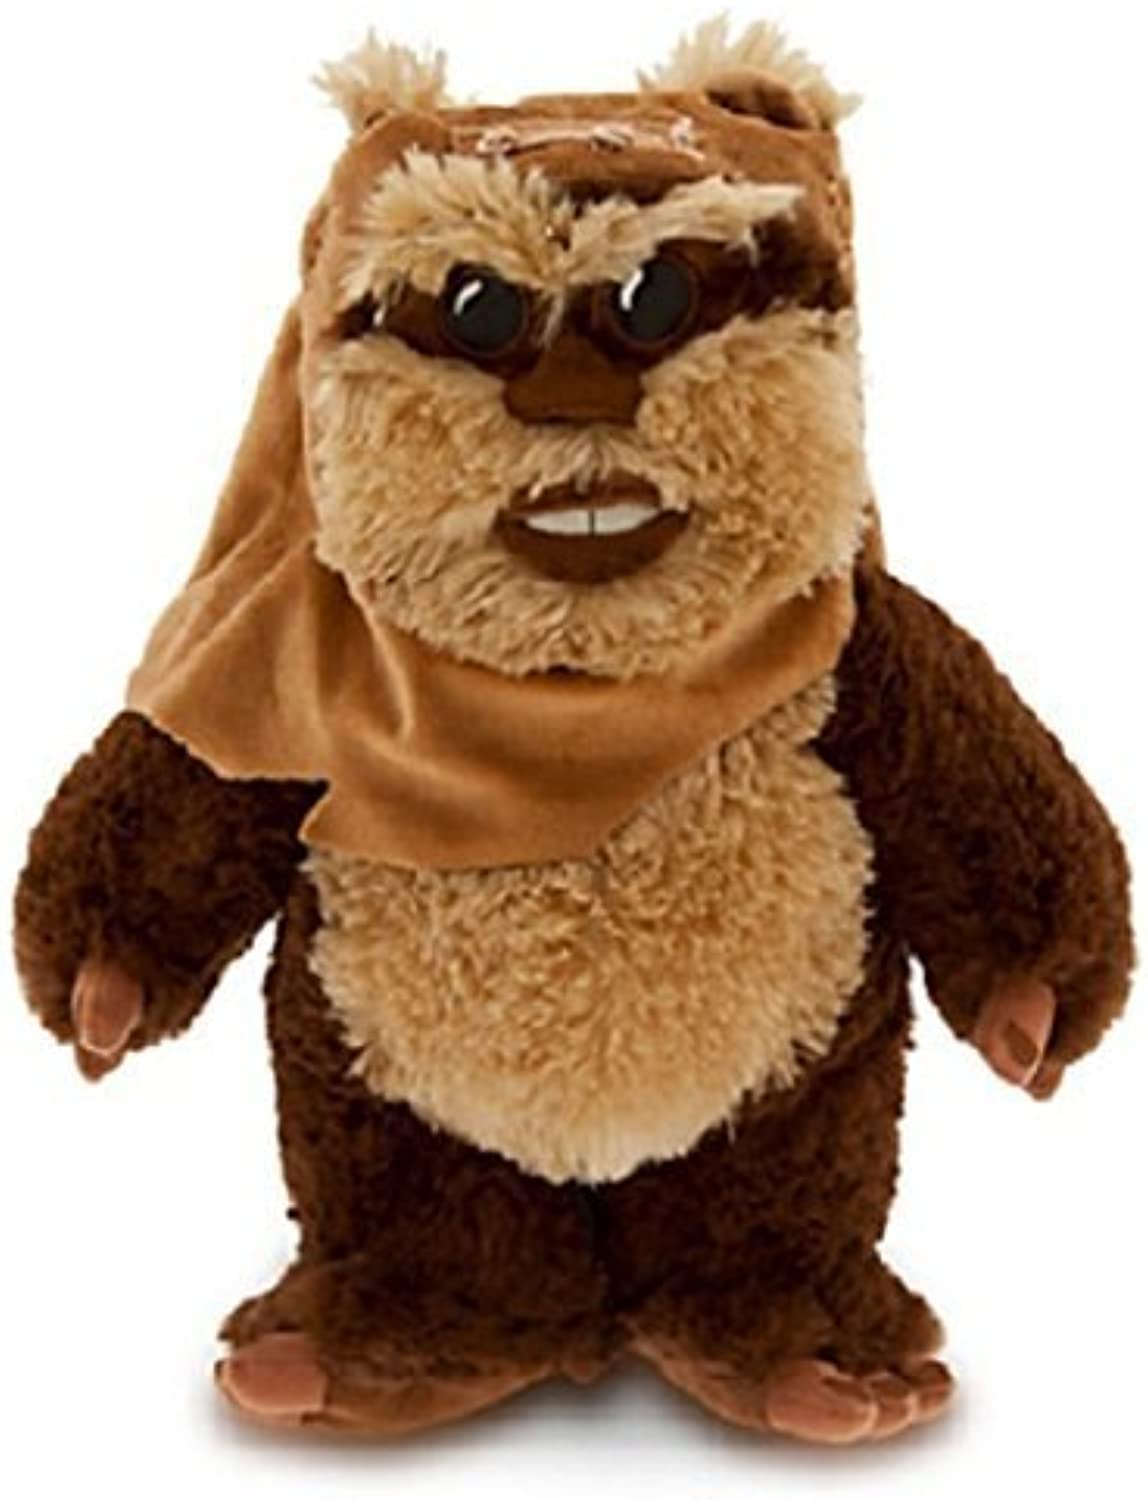 Star Wars Ewok Wicket Plush Figure